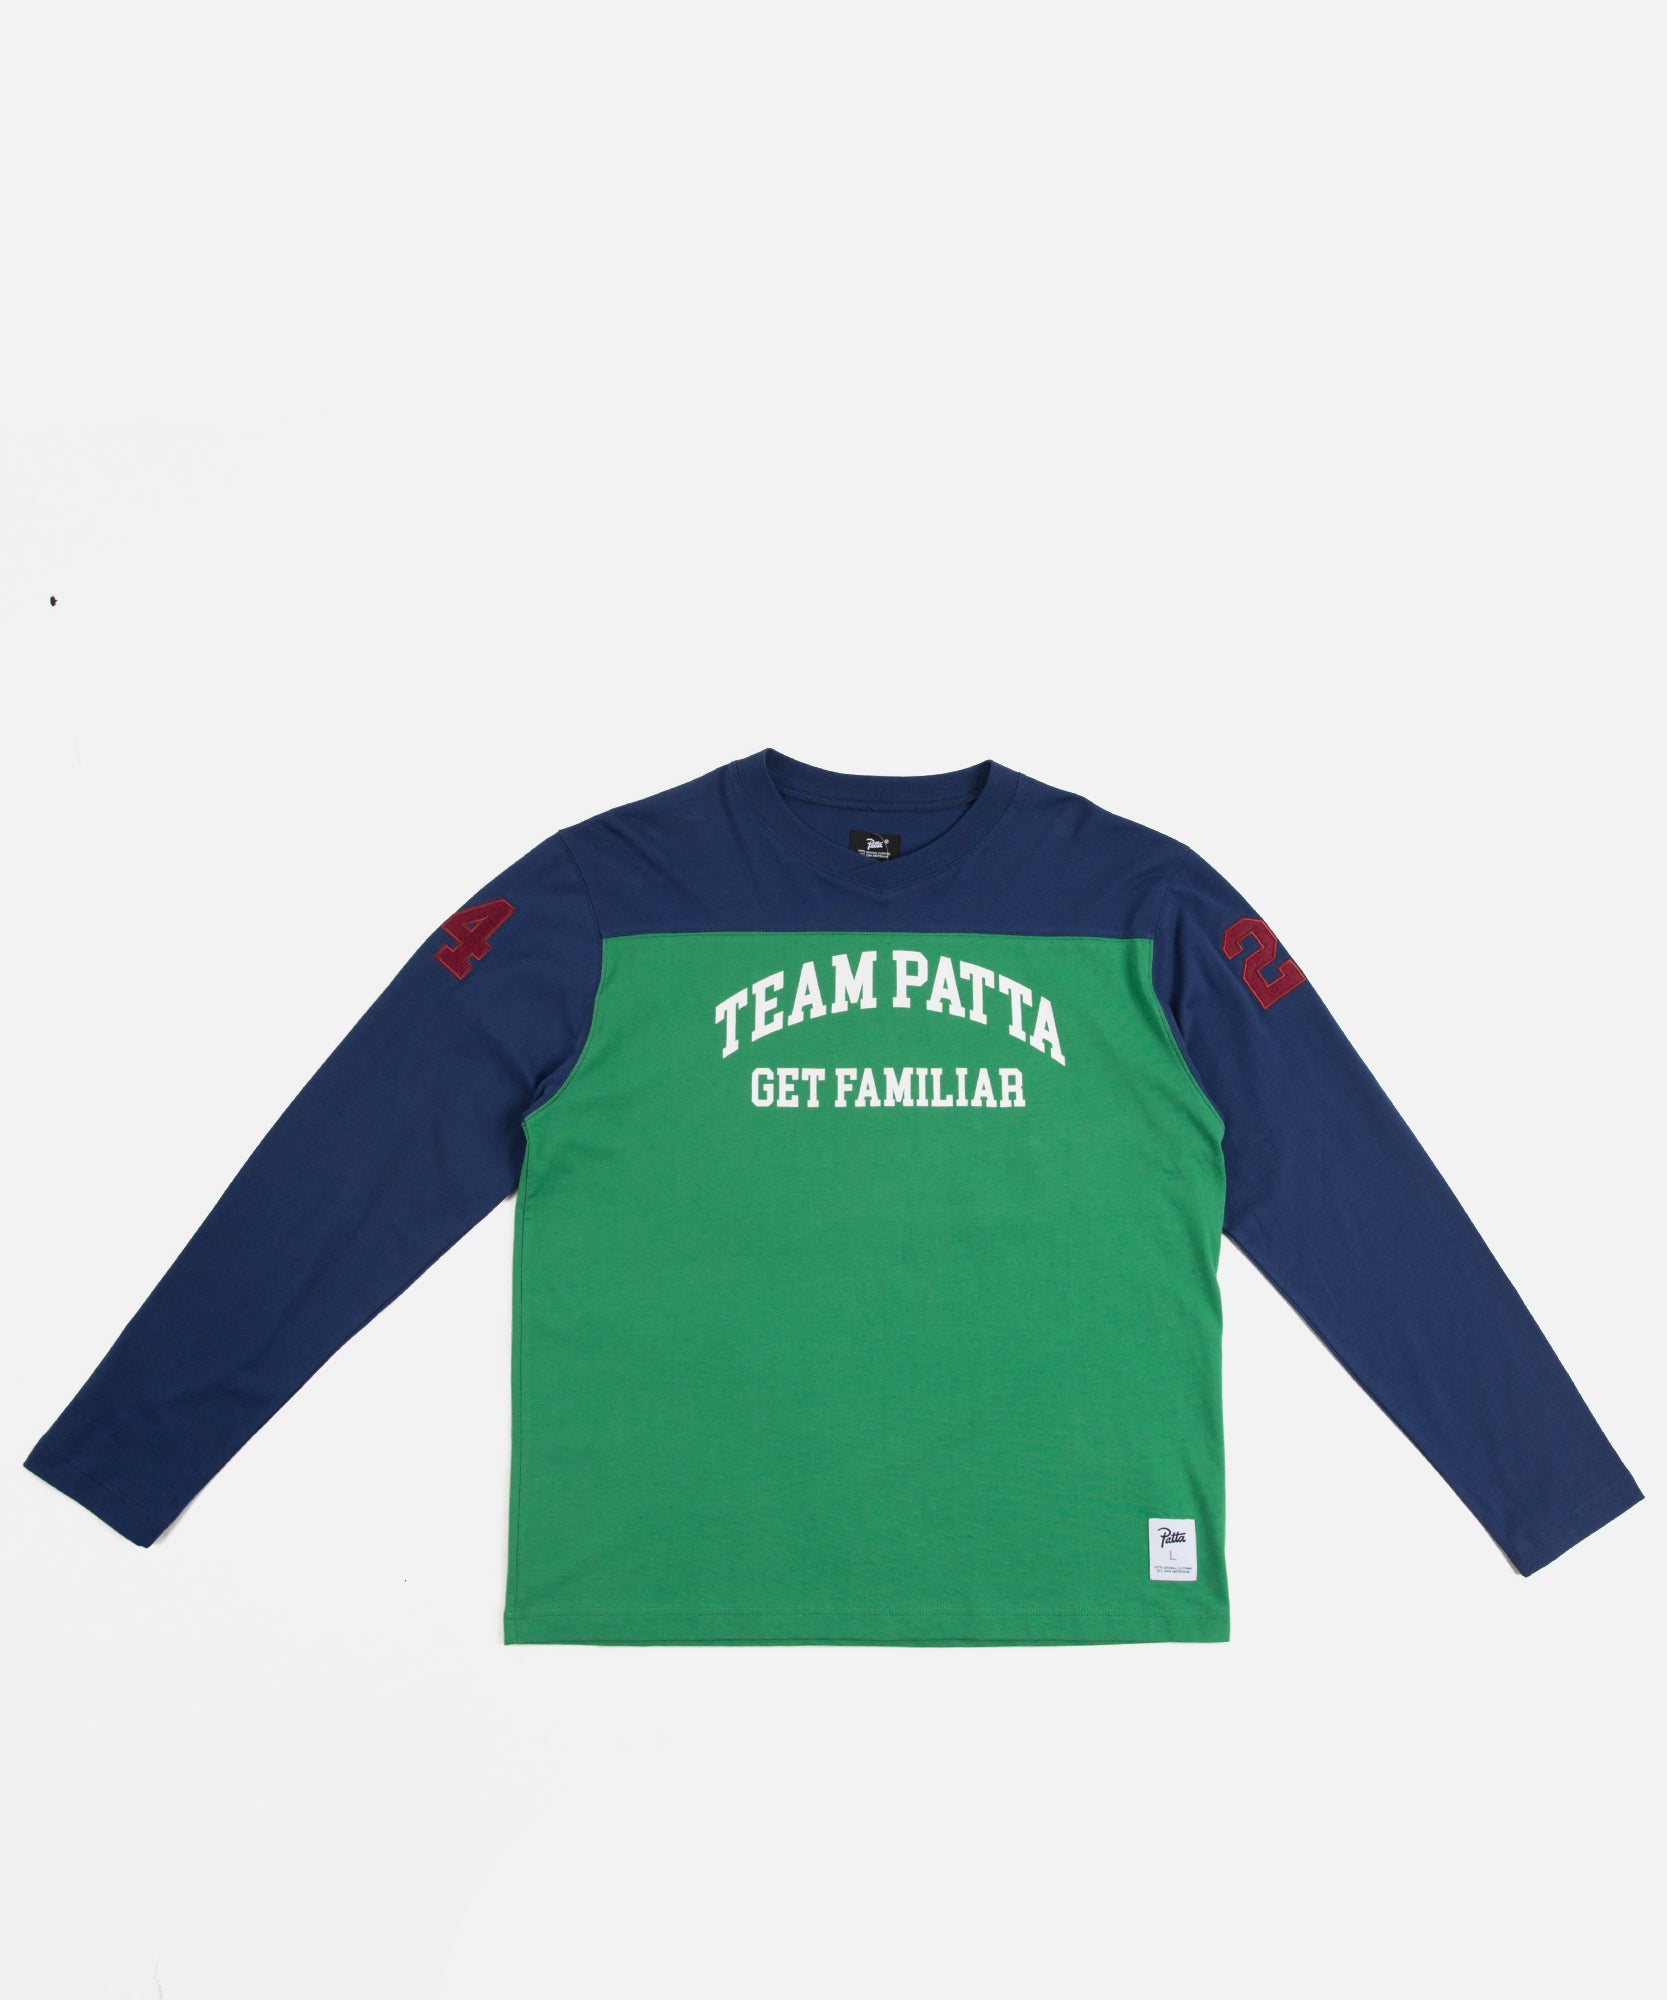 Patta Get Familiar Hockey Jersey (Green/Blueprint)